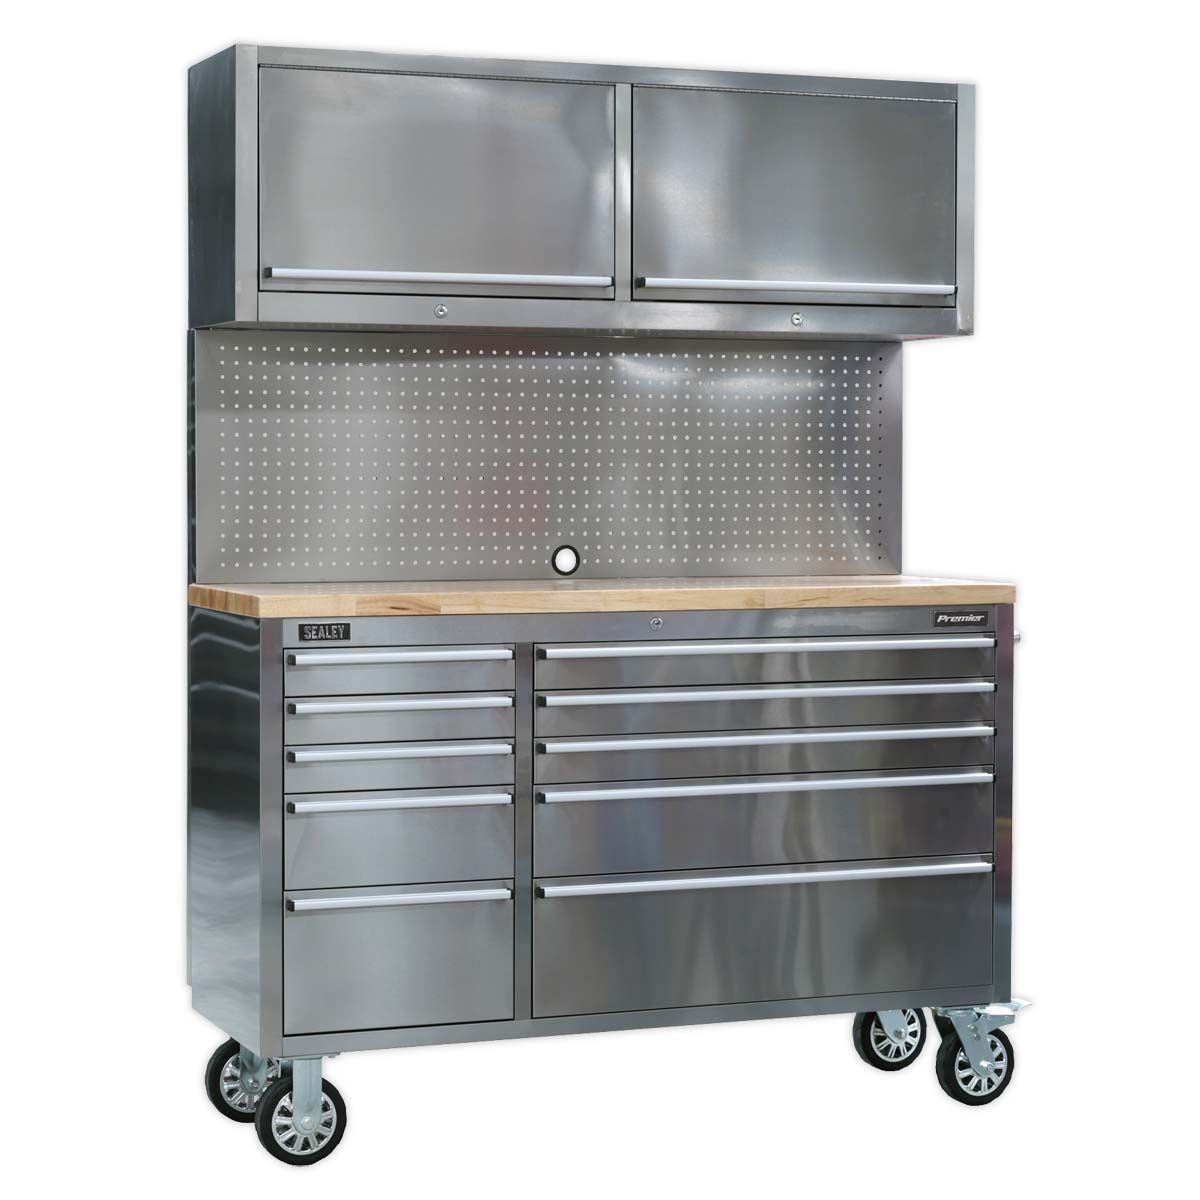 Sealey Premier Mobile Stainless Steel Tool Cabinet 10 Drawer with Backboard & 2